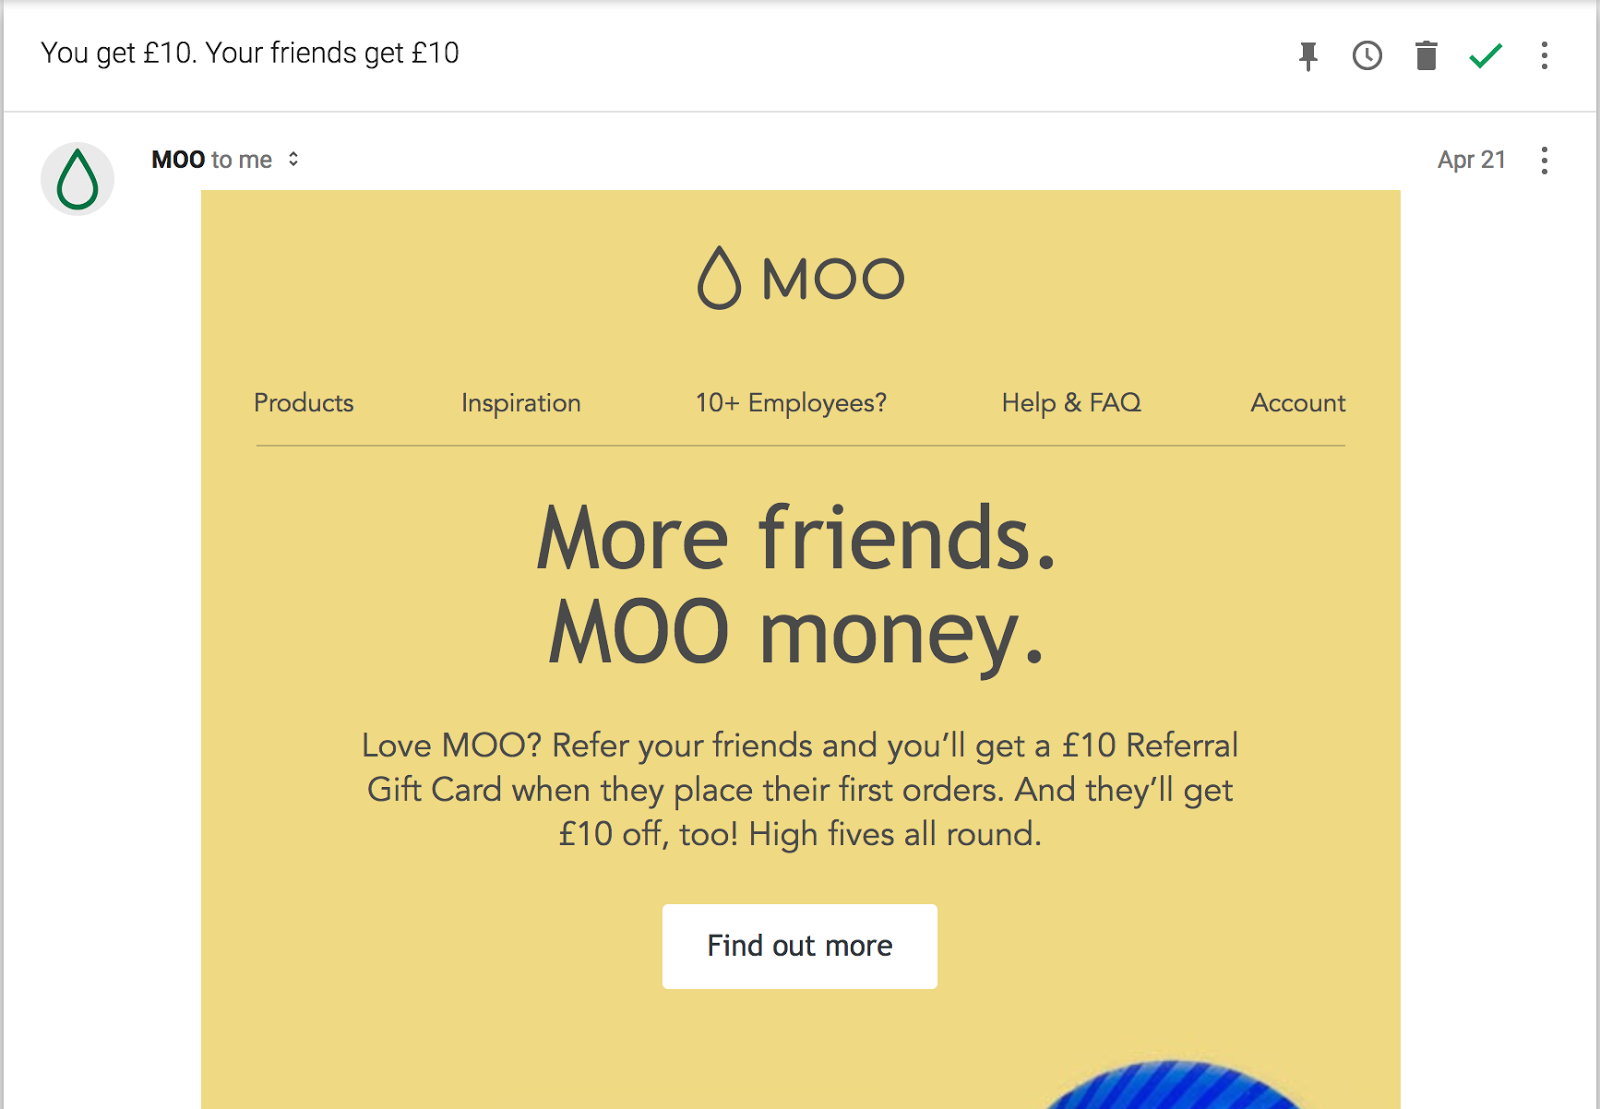 Moo offers a small incentive to get more referrals.